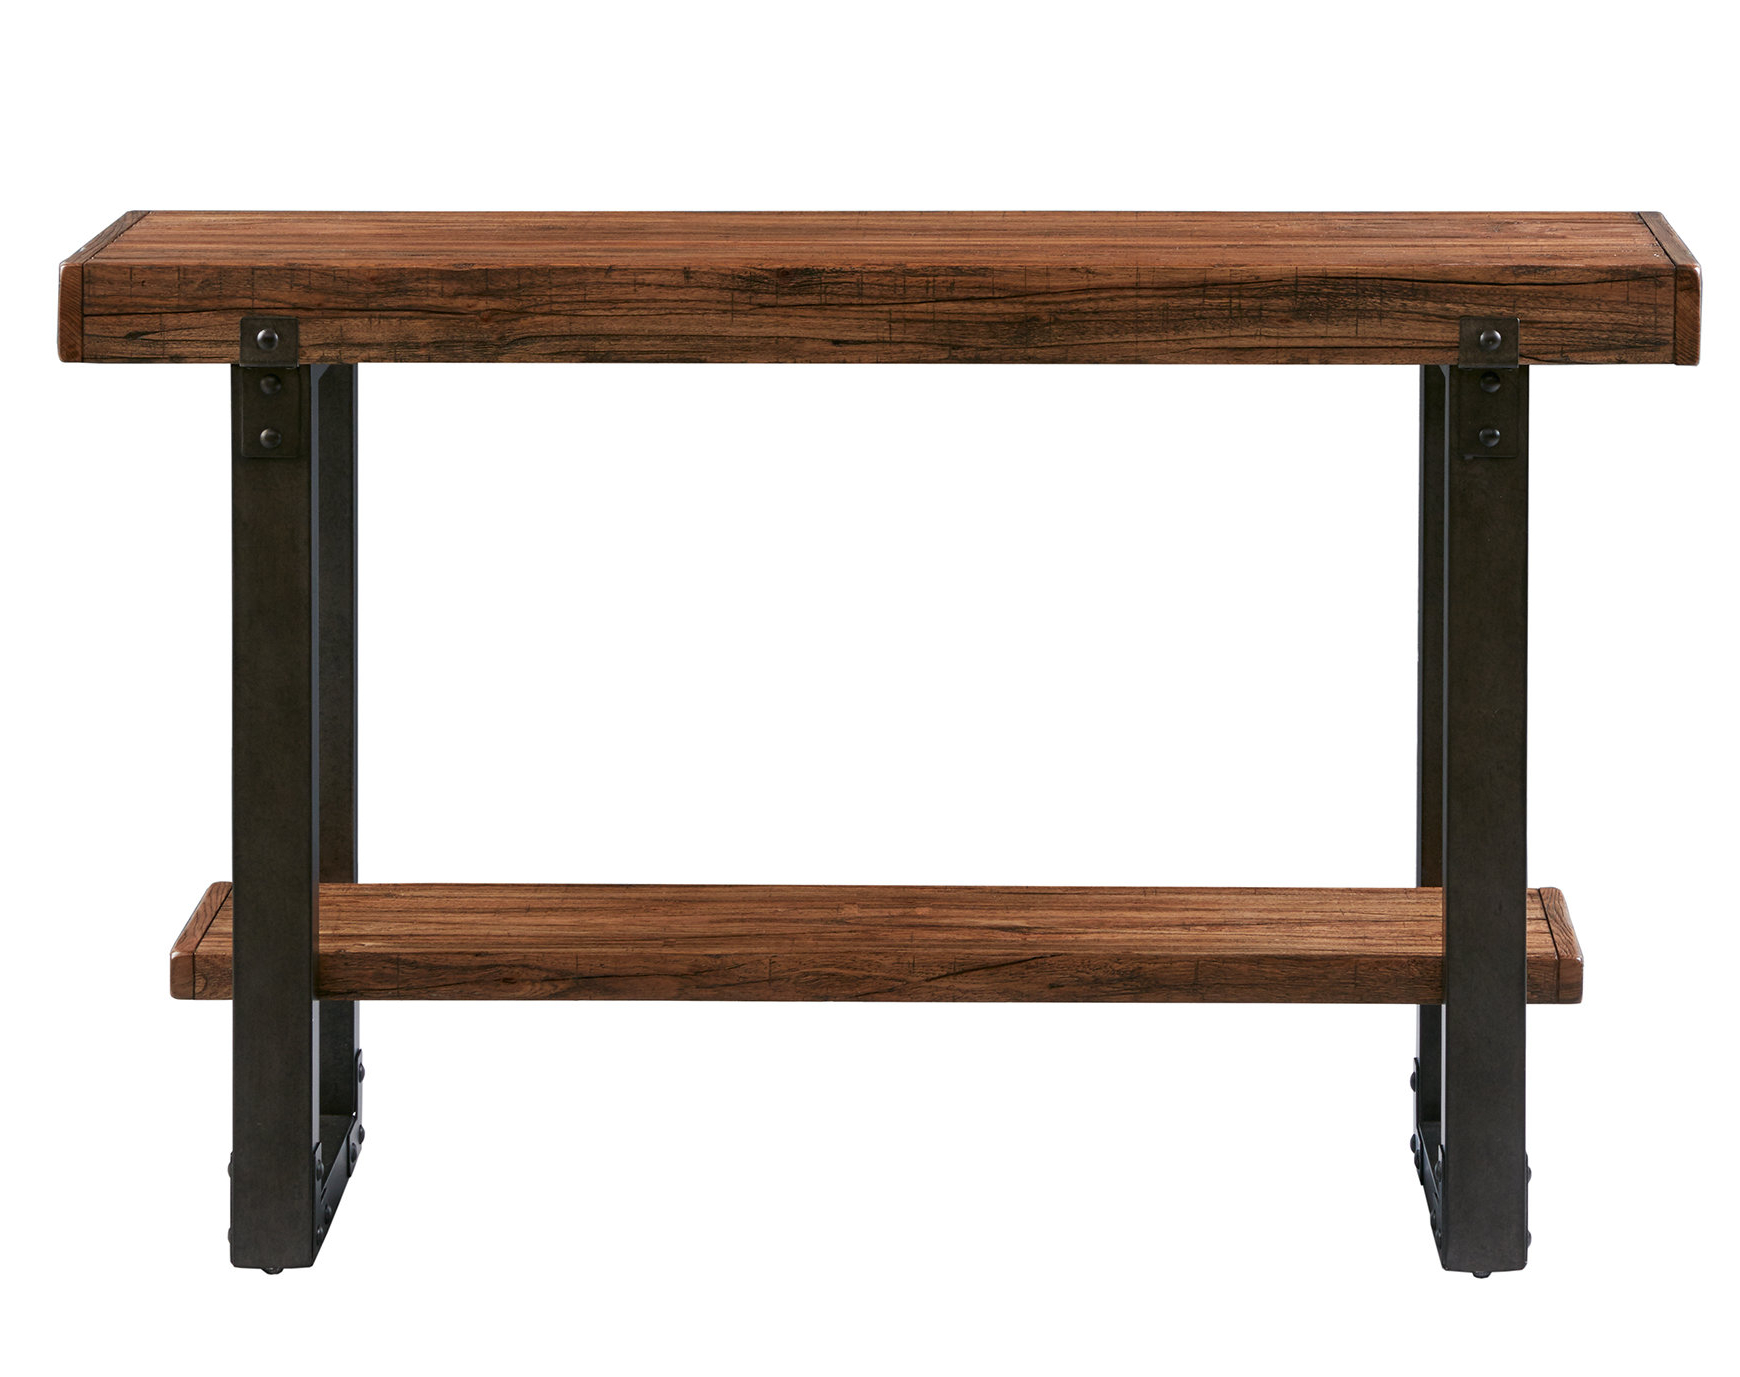 Diandra Console Table & Reviews | Joss & Main Within Gunmetal Media Console Tables (View 15 of 20)